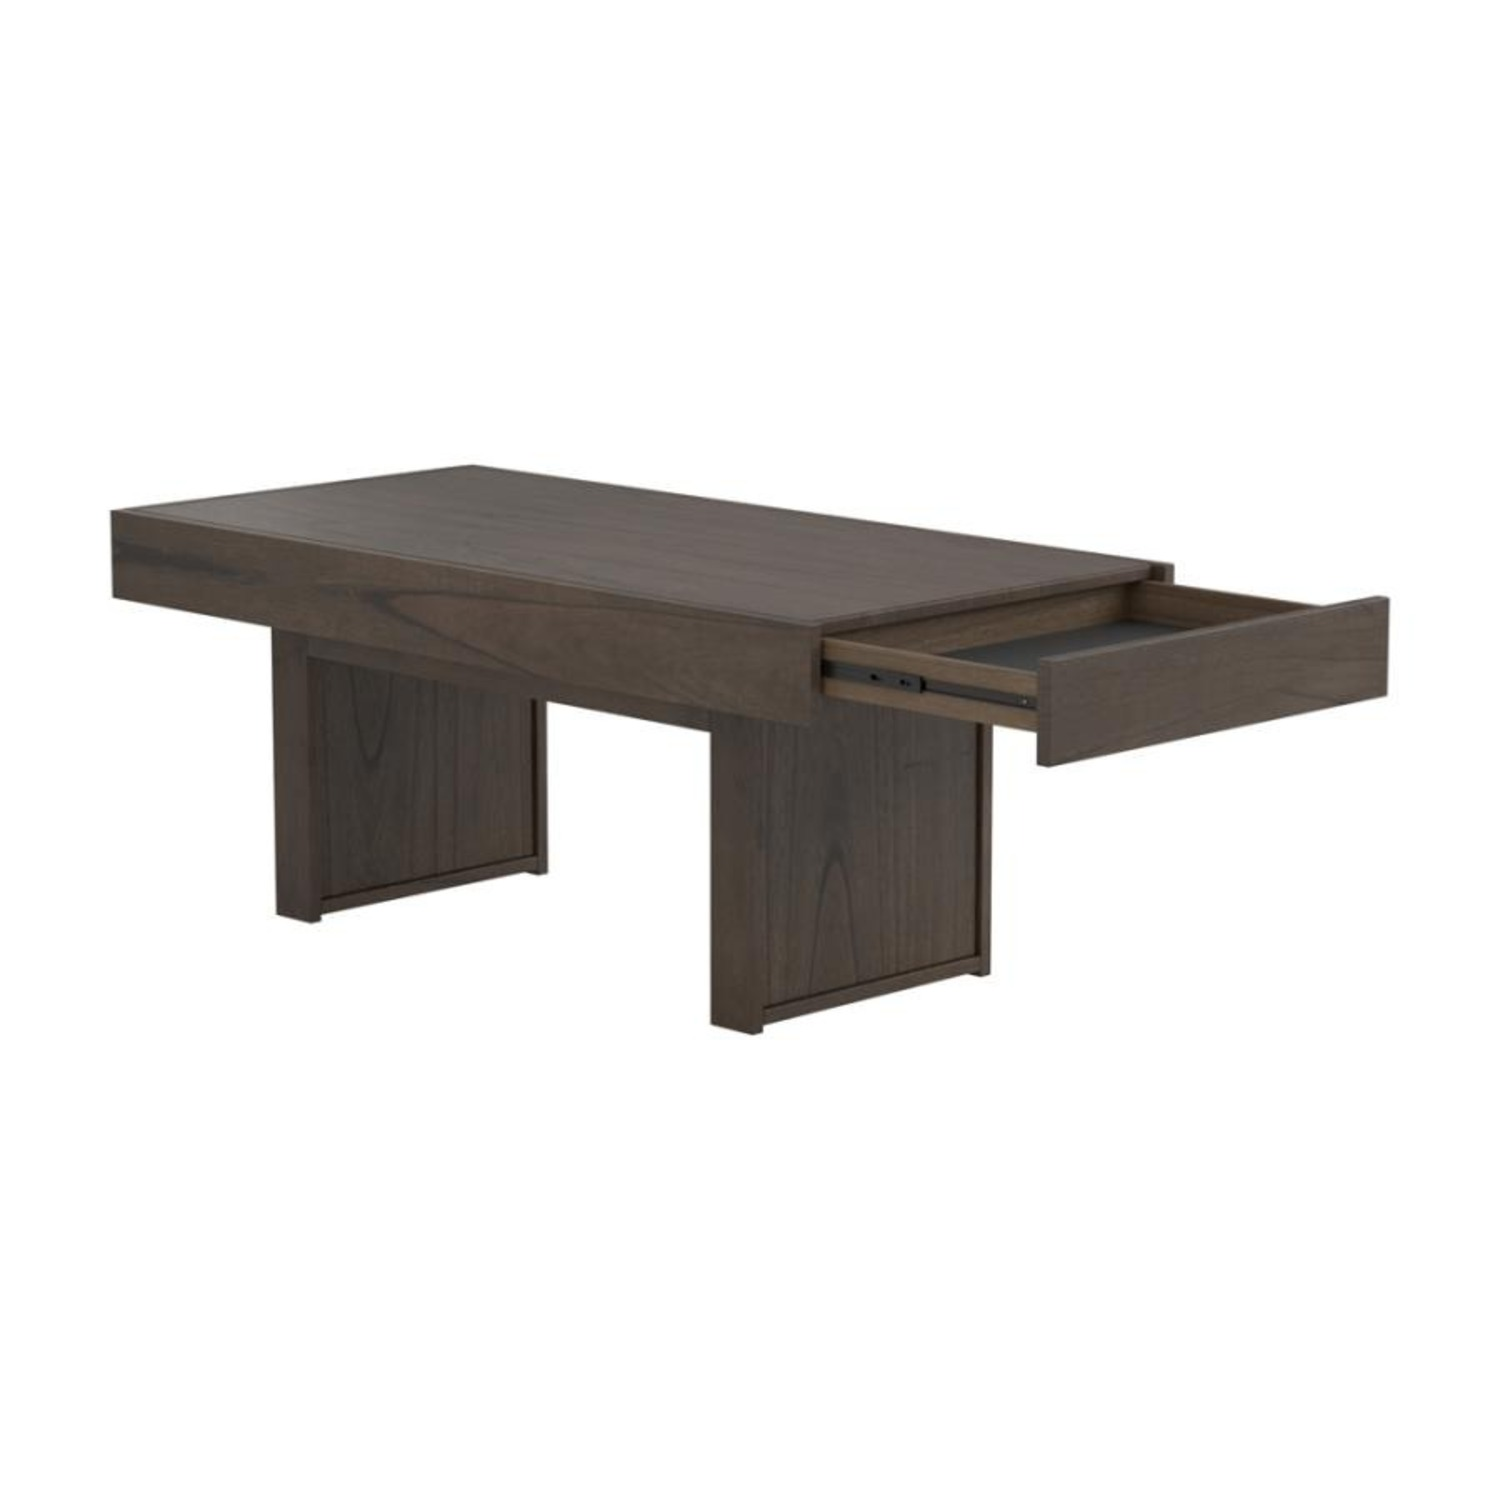 Coffee Table In Wheat Brown Finish - image-4